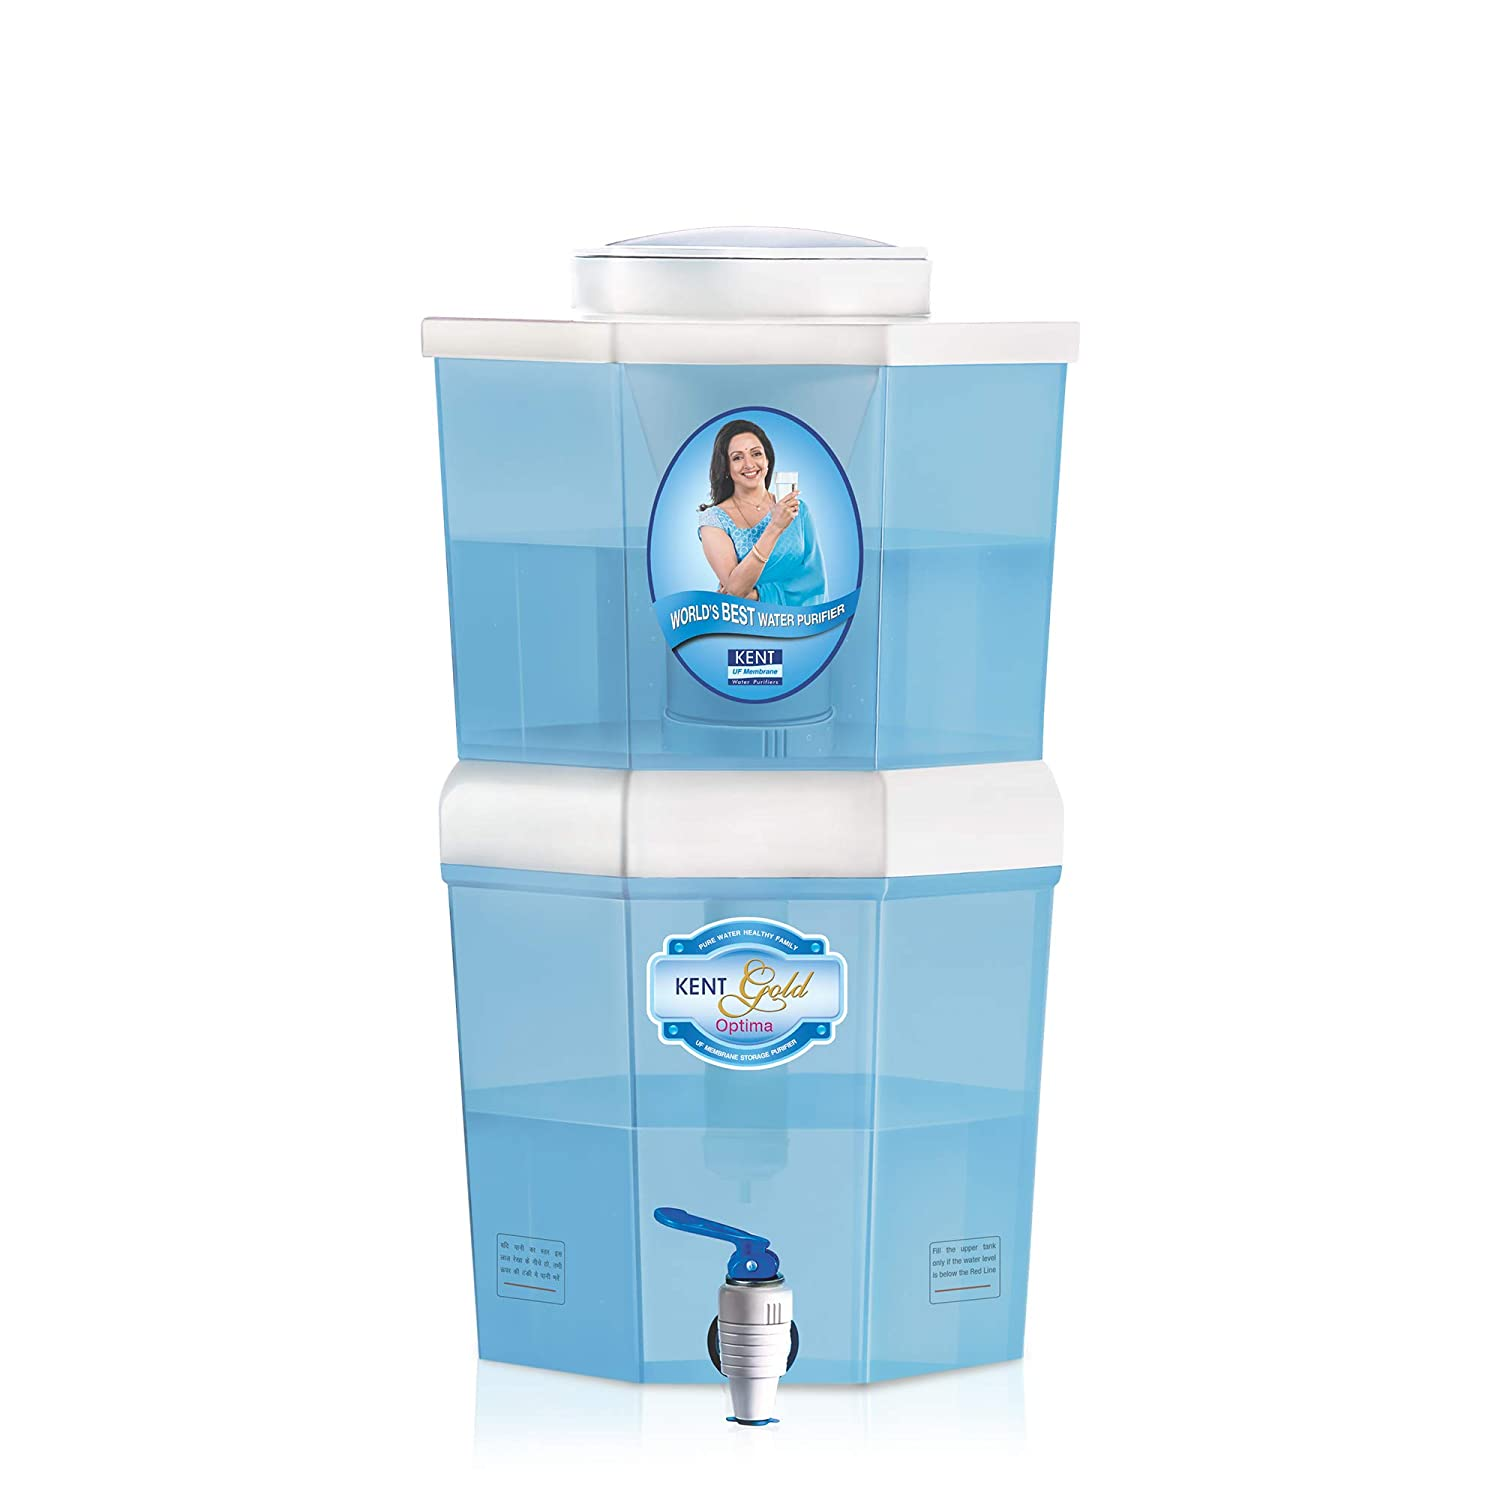 KENT Gold Optima 10-Liter Gravity Based Non-electric Water Purifier